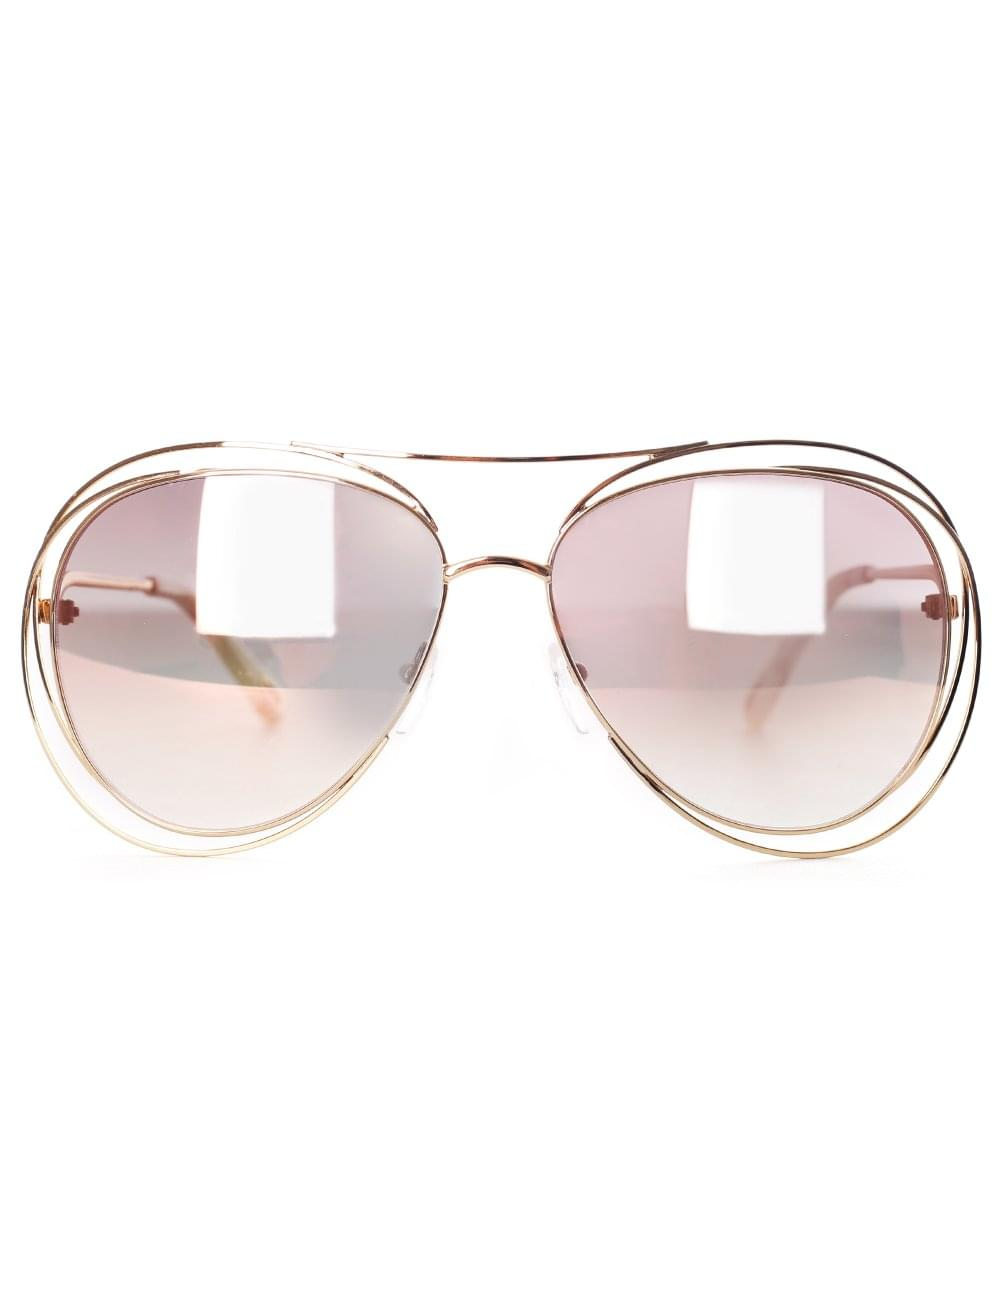 6e5f477daf Chloe Women s Carlina Aviator Sunglasses gold Marble Revo Rose Peach